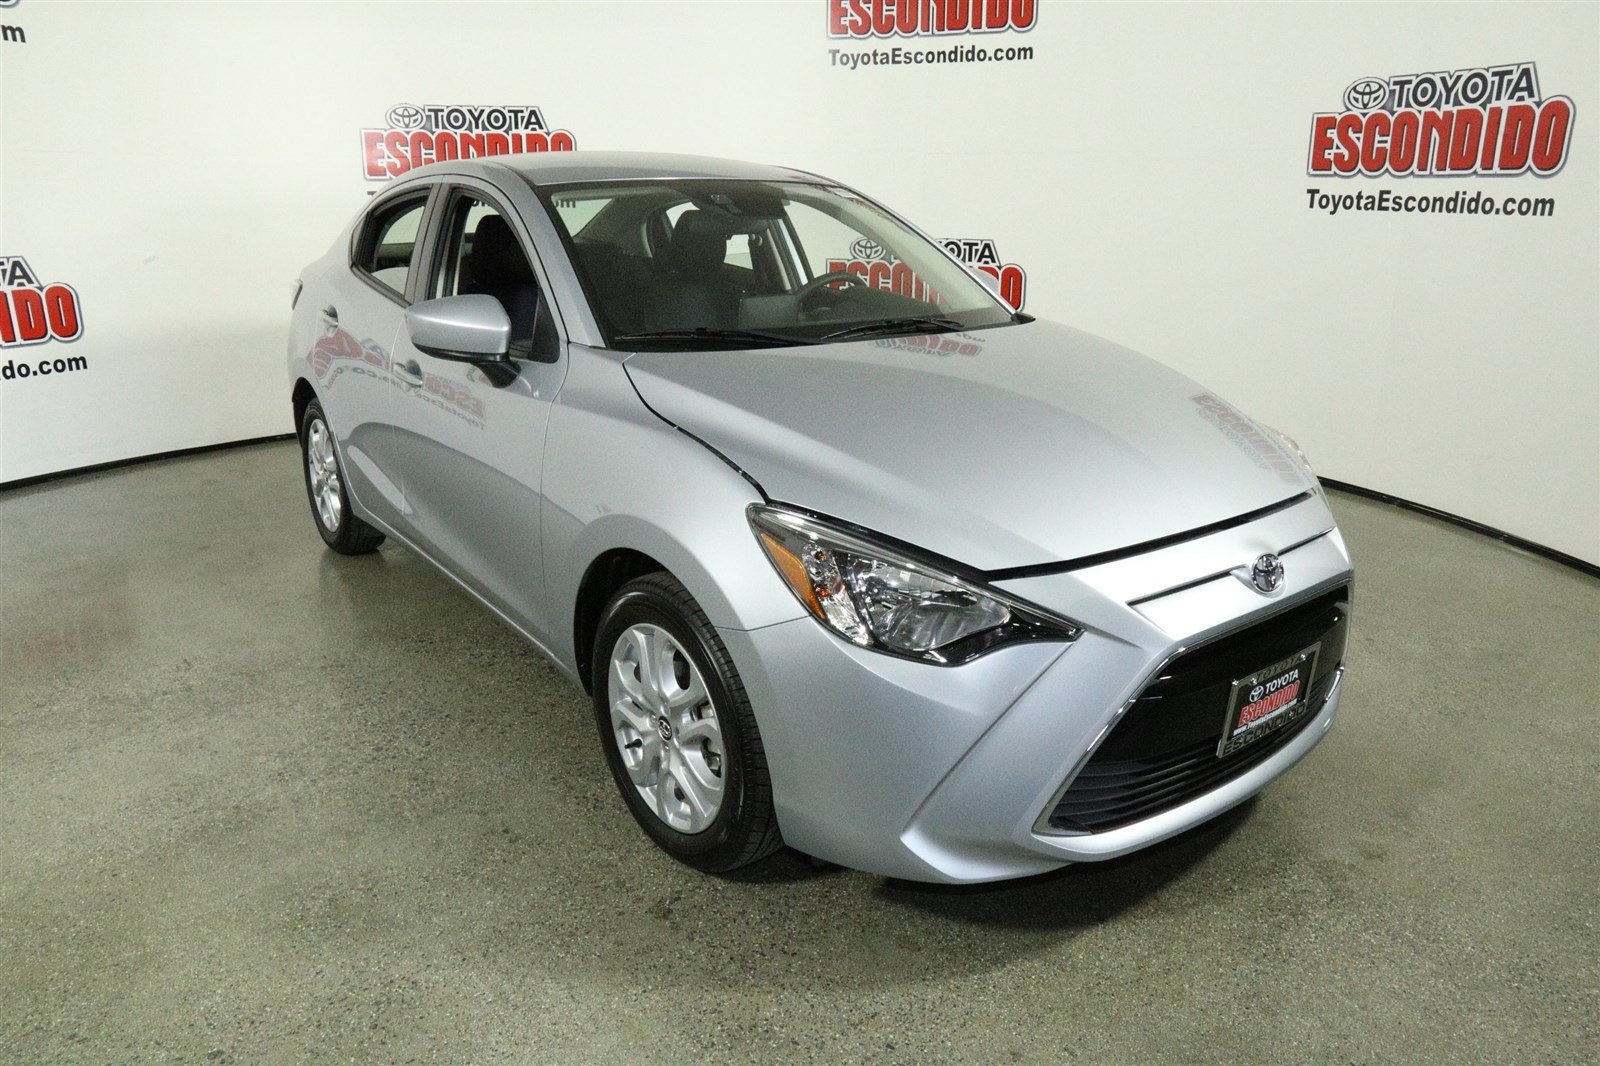 new 2018 toyota yaris ia 4dr car in escondido 1015771 toyota escondido. Black Bedroom Furniture Sets. Home Design Ideas